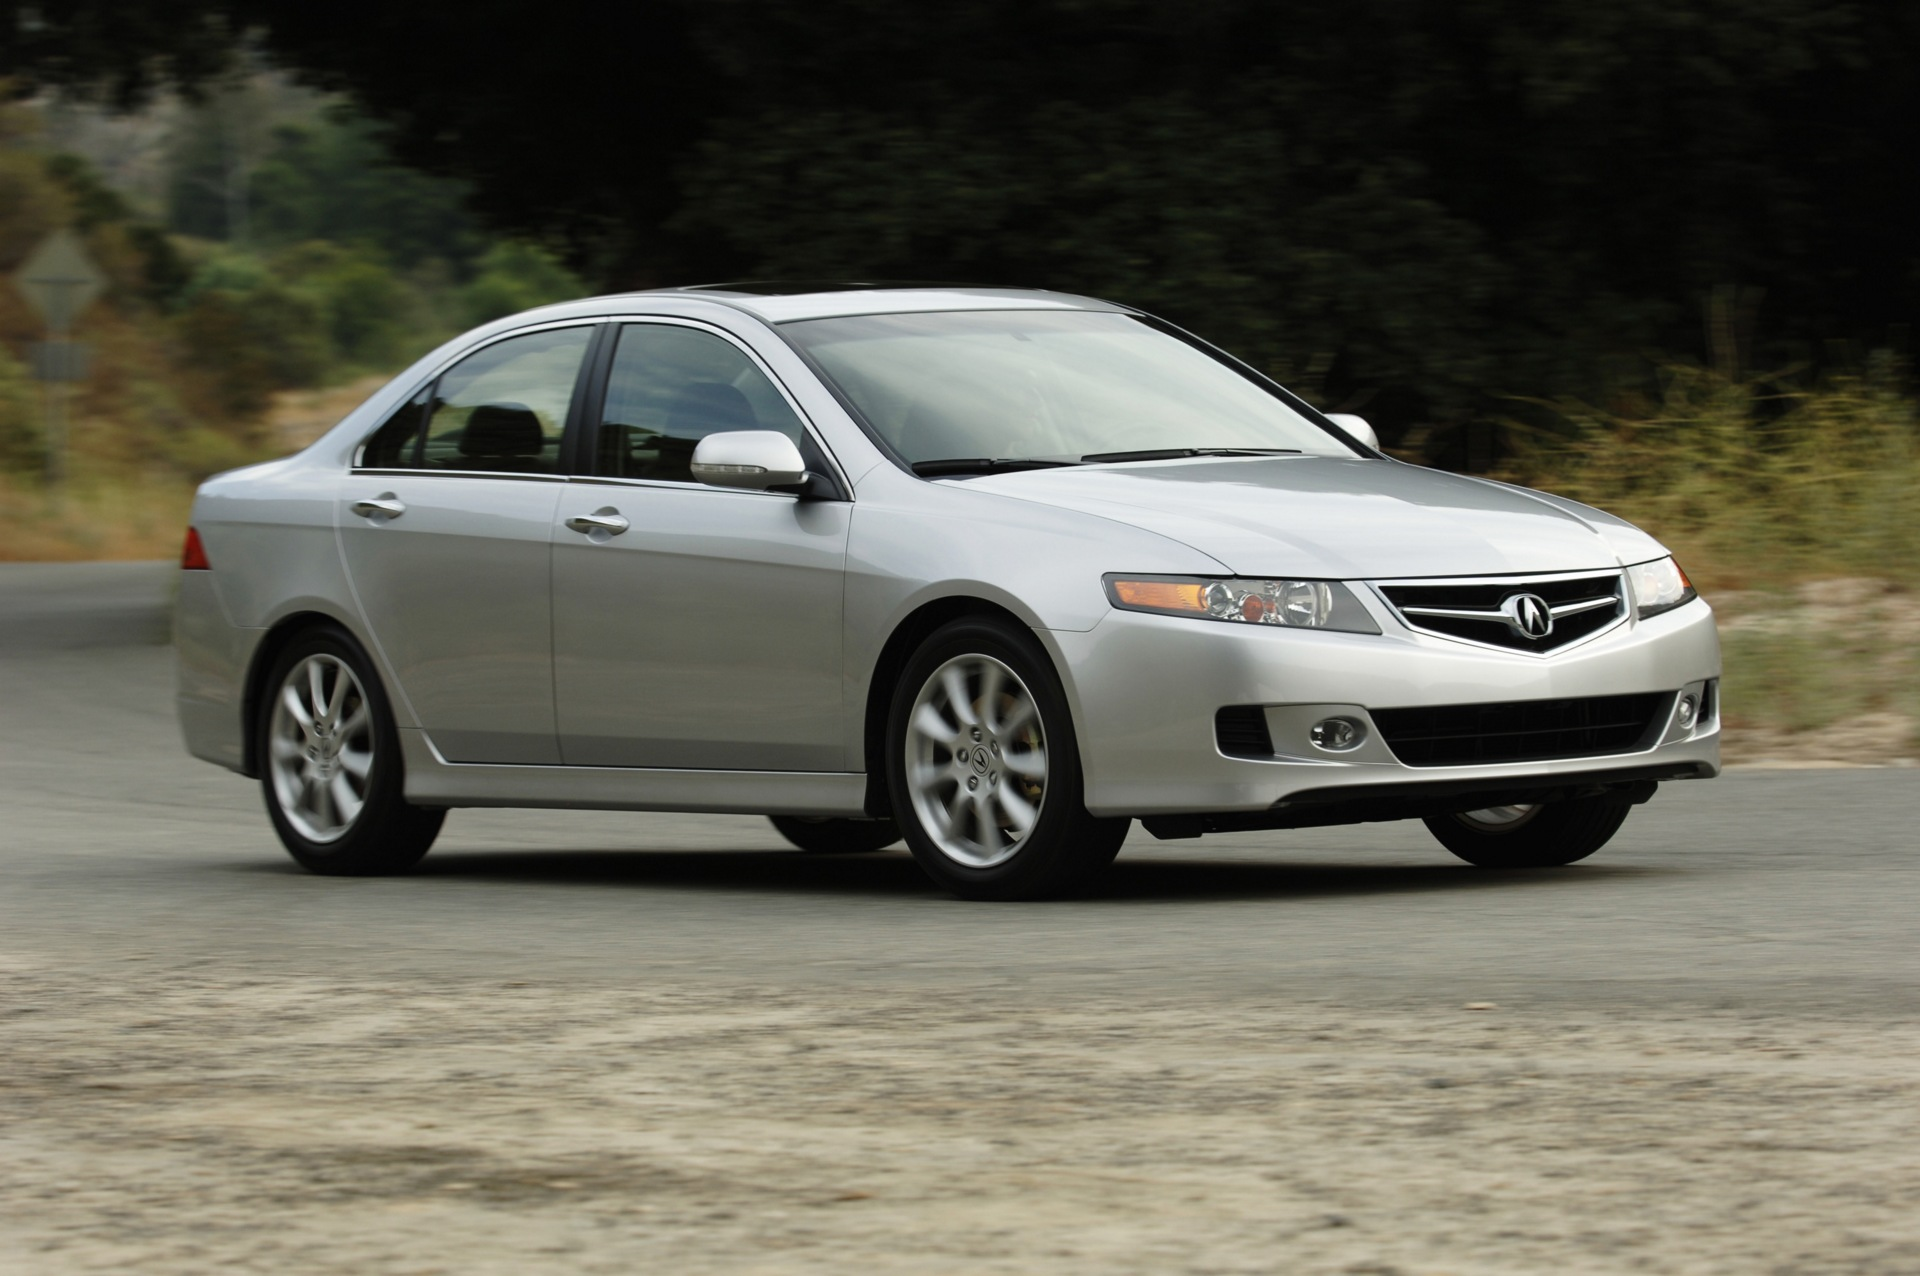 2017 Honda Accord Sedan Configurations >> 2008 Acura TSX - conceptcarz.com